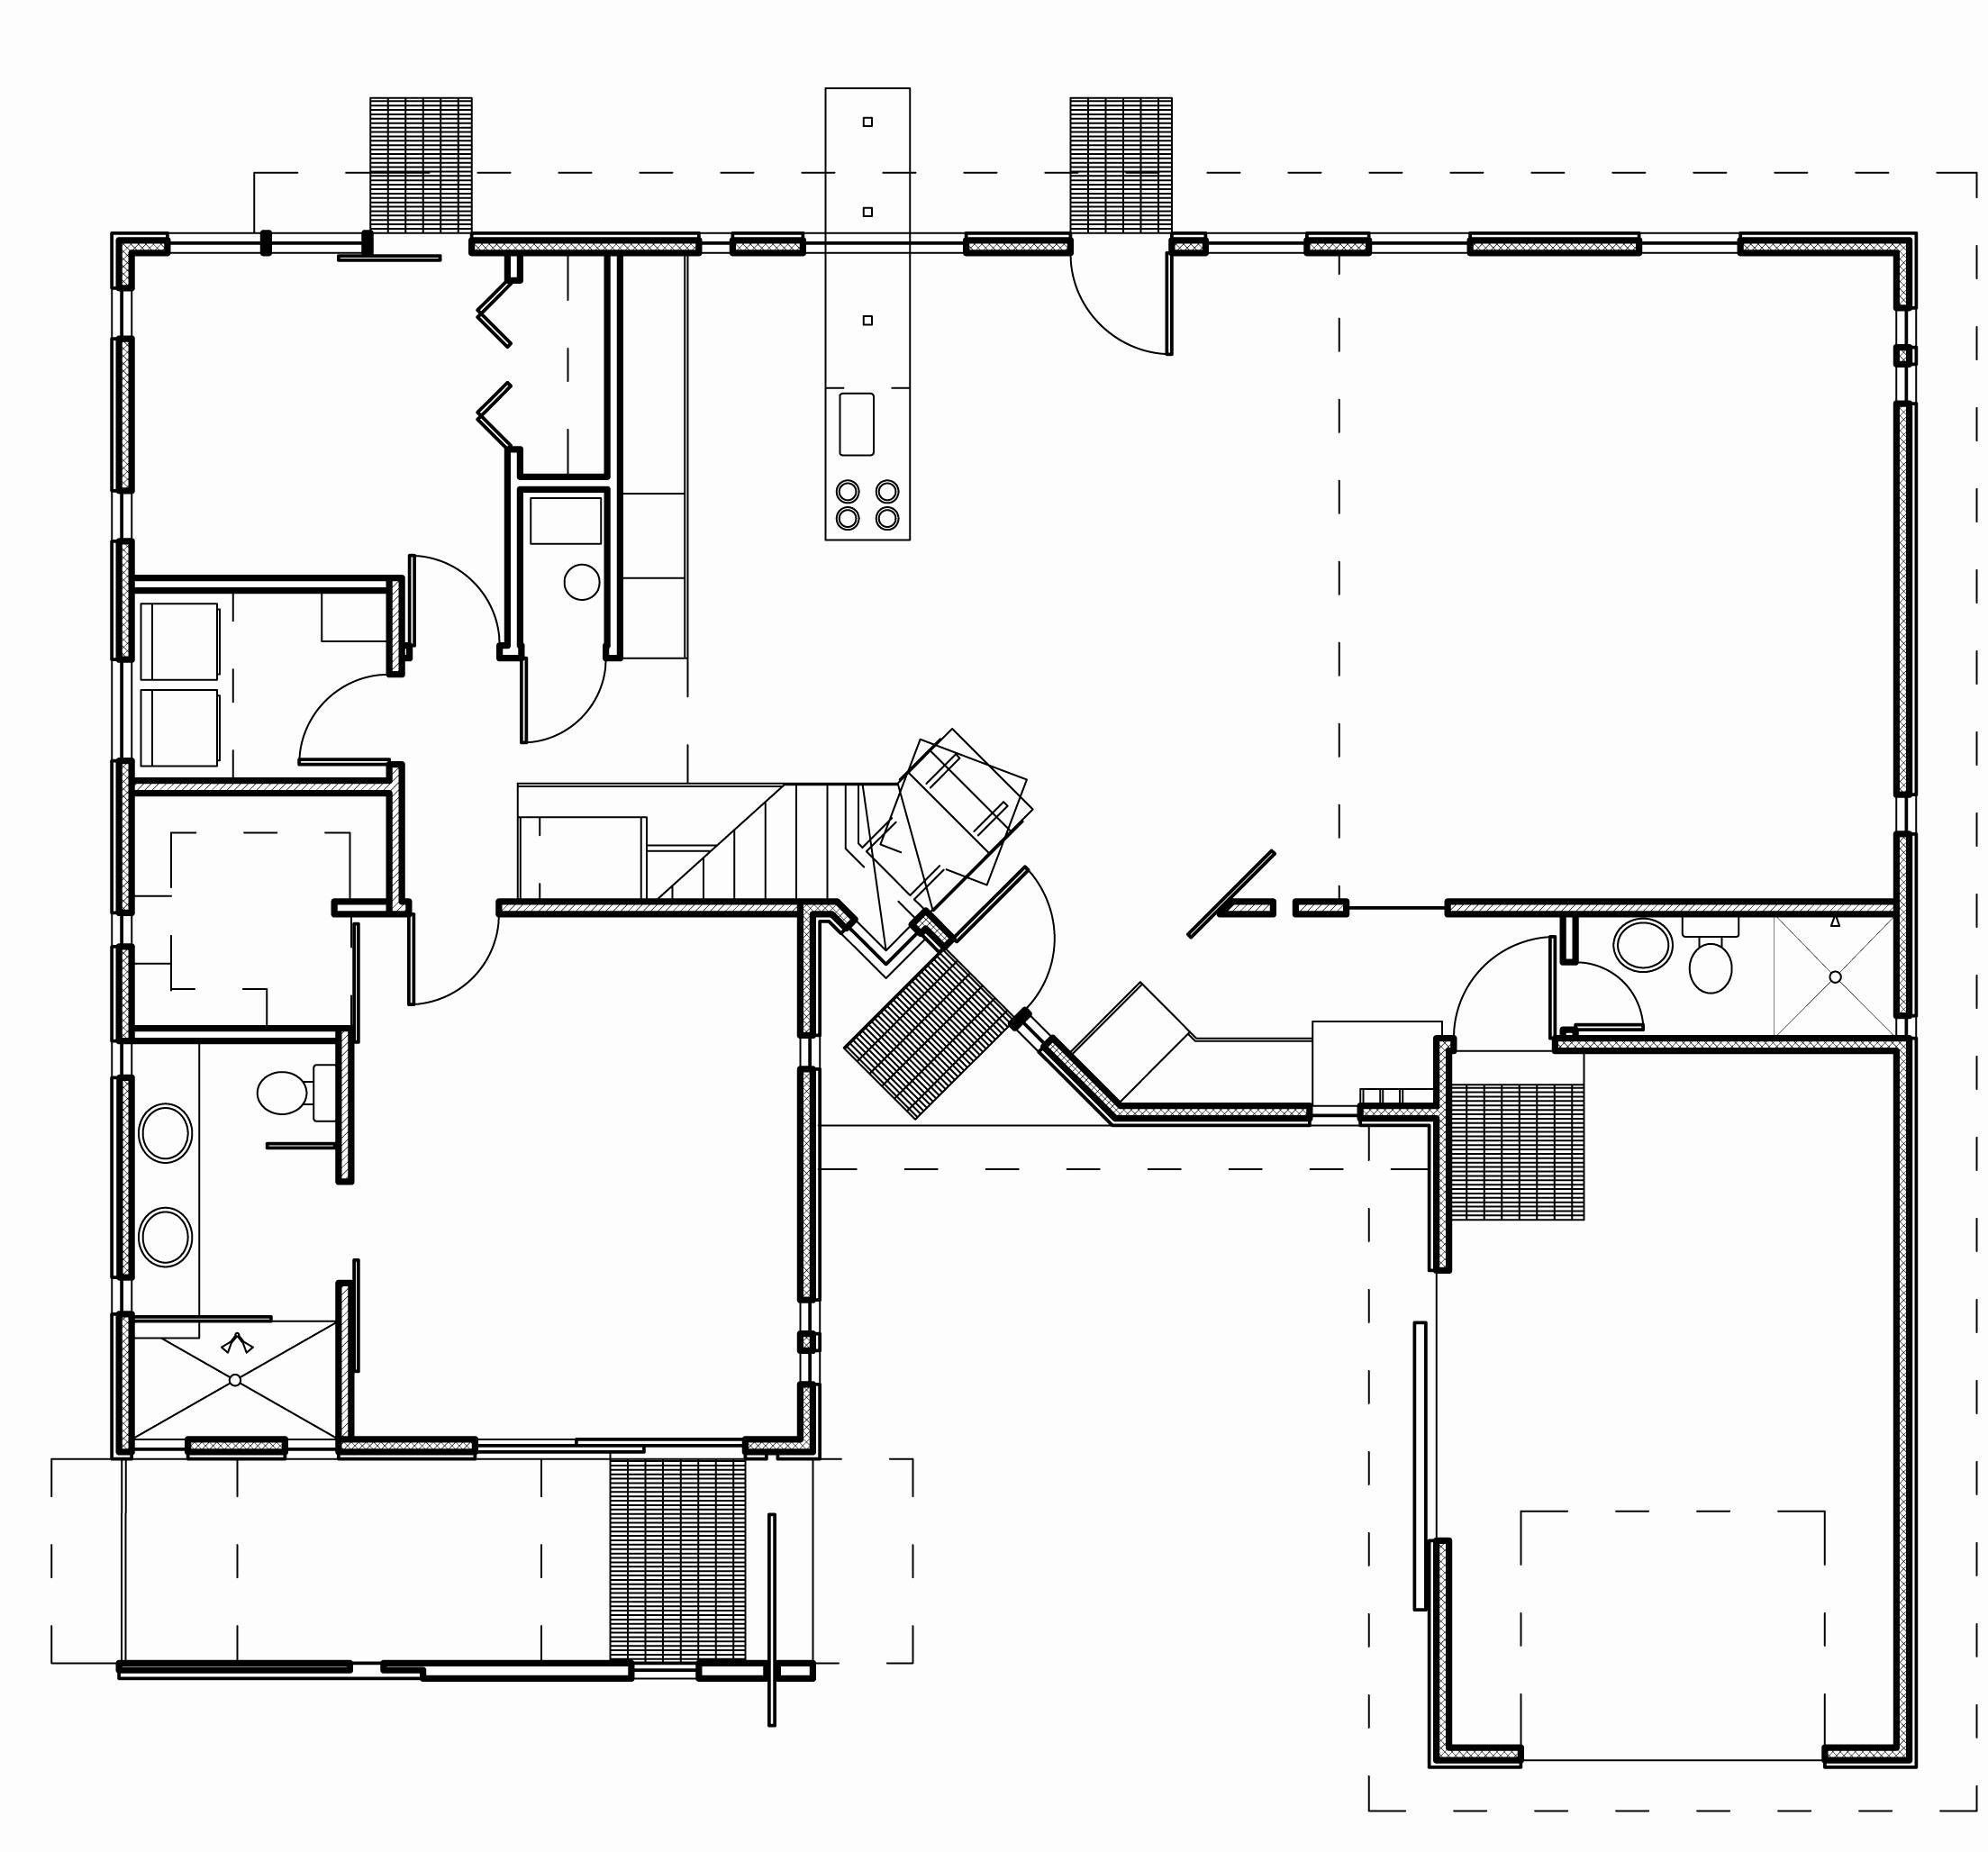 Ethanjaxson I Will Convert Jpg Pdf Hand Sketch Old Plan To Autocad 2d Or 3d For 5 On Fiverr Com Modern House Plans Home Design Floor Plans Small House Design